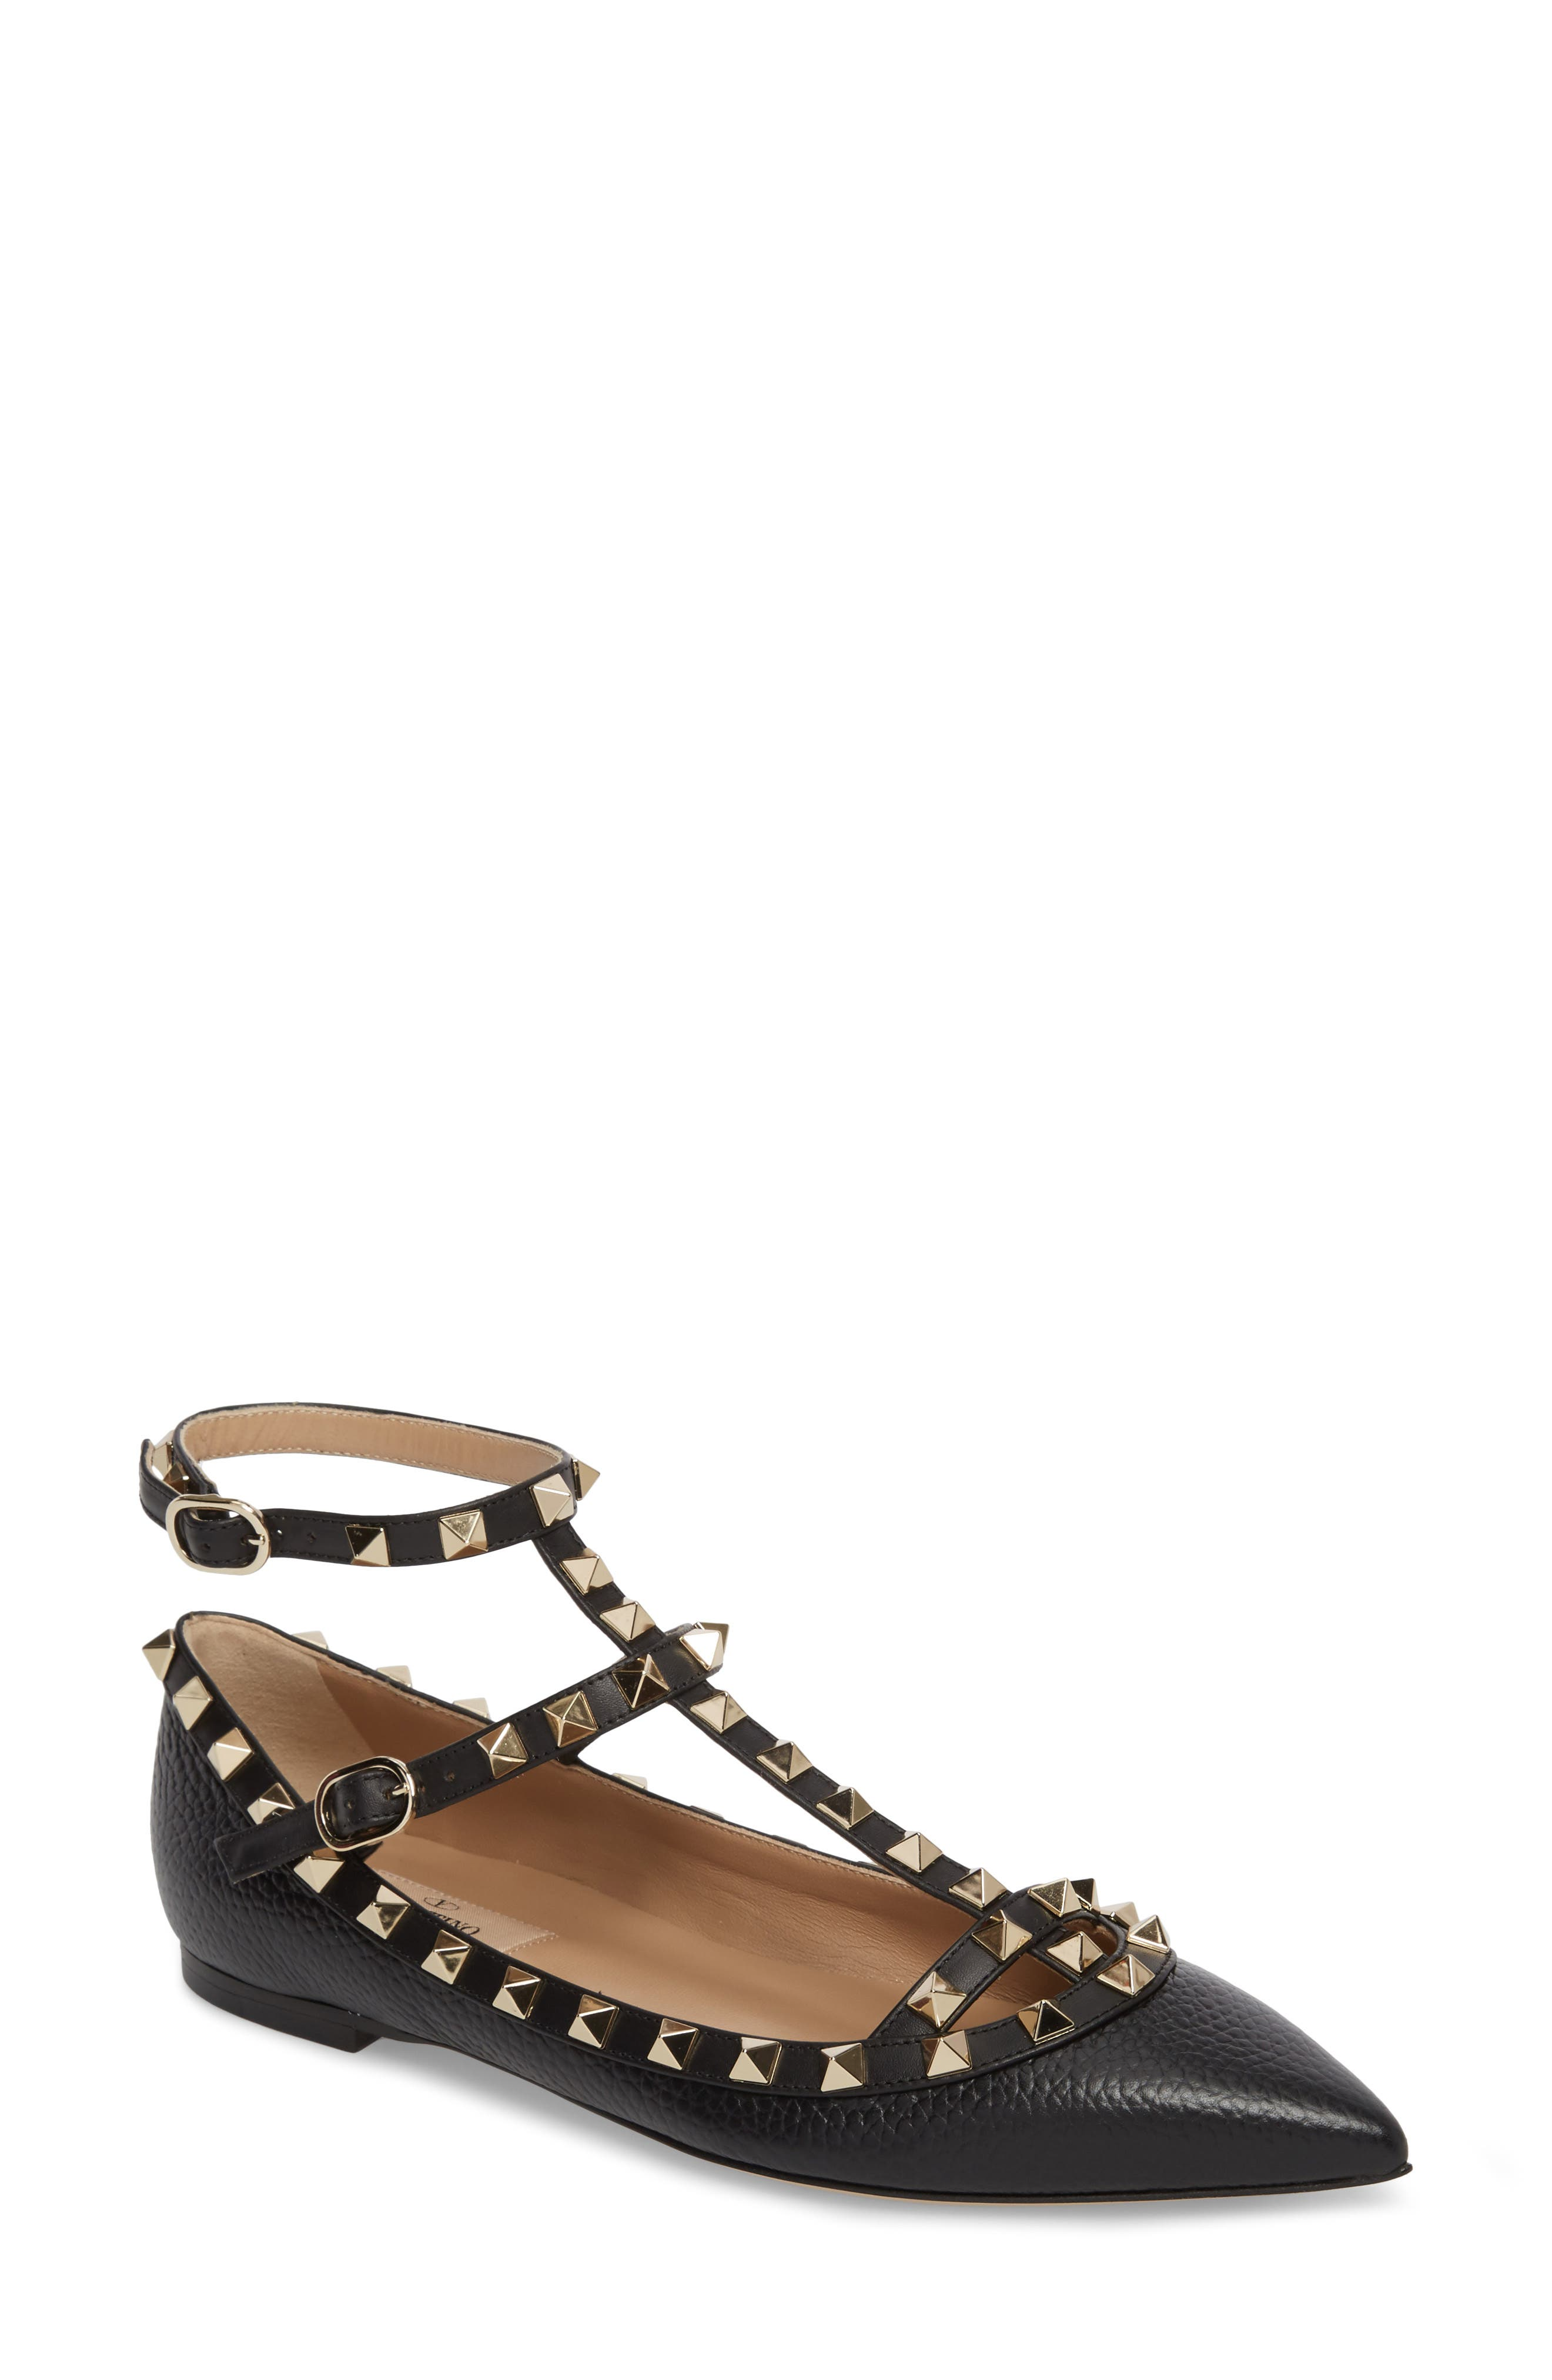 Rockstud Ankle Strap Pointy Toe Flat,                             Main thumbnail 1, color,                             001